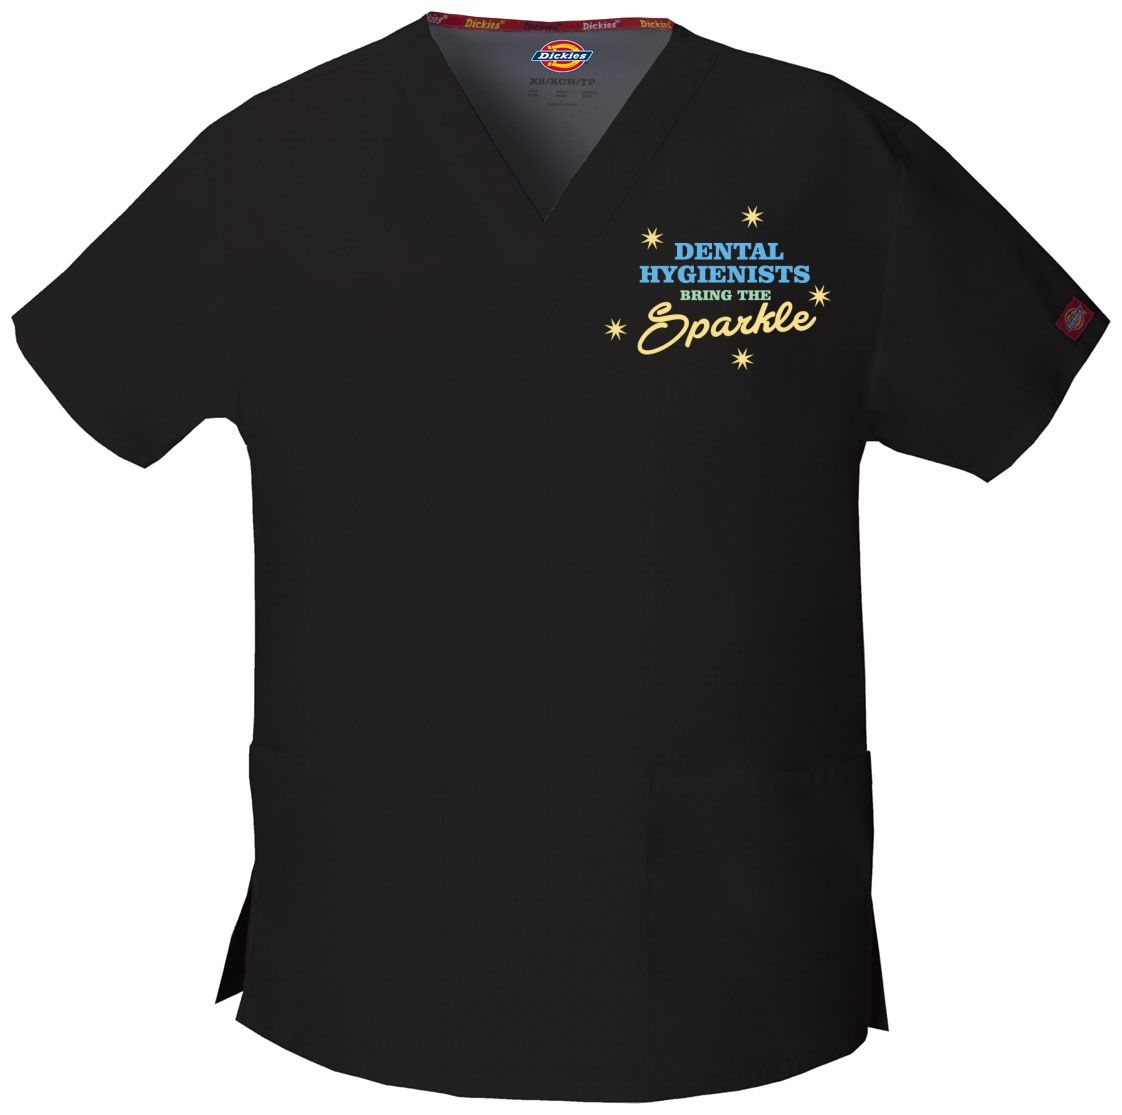 Dental Hygienists Bring The Sparkle - Embroidered Scrub / Embroidered  Medical Srcubs Tops